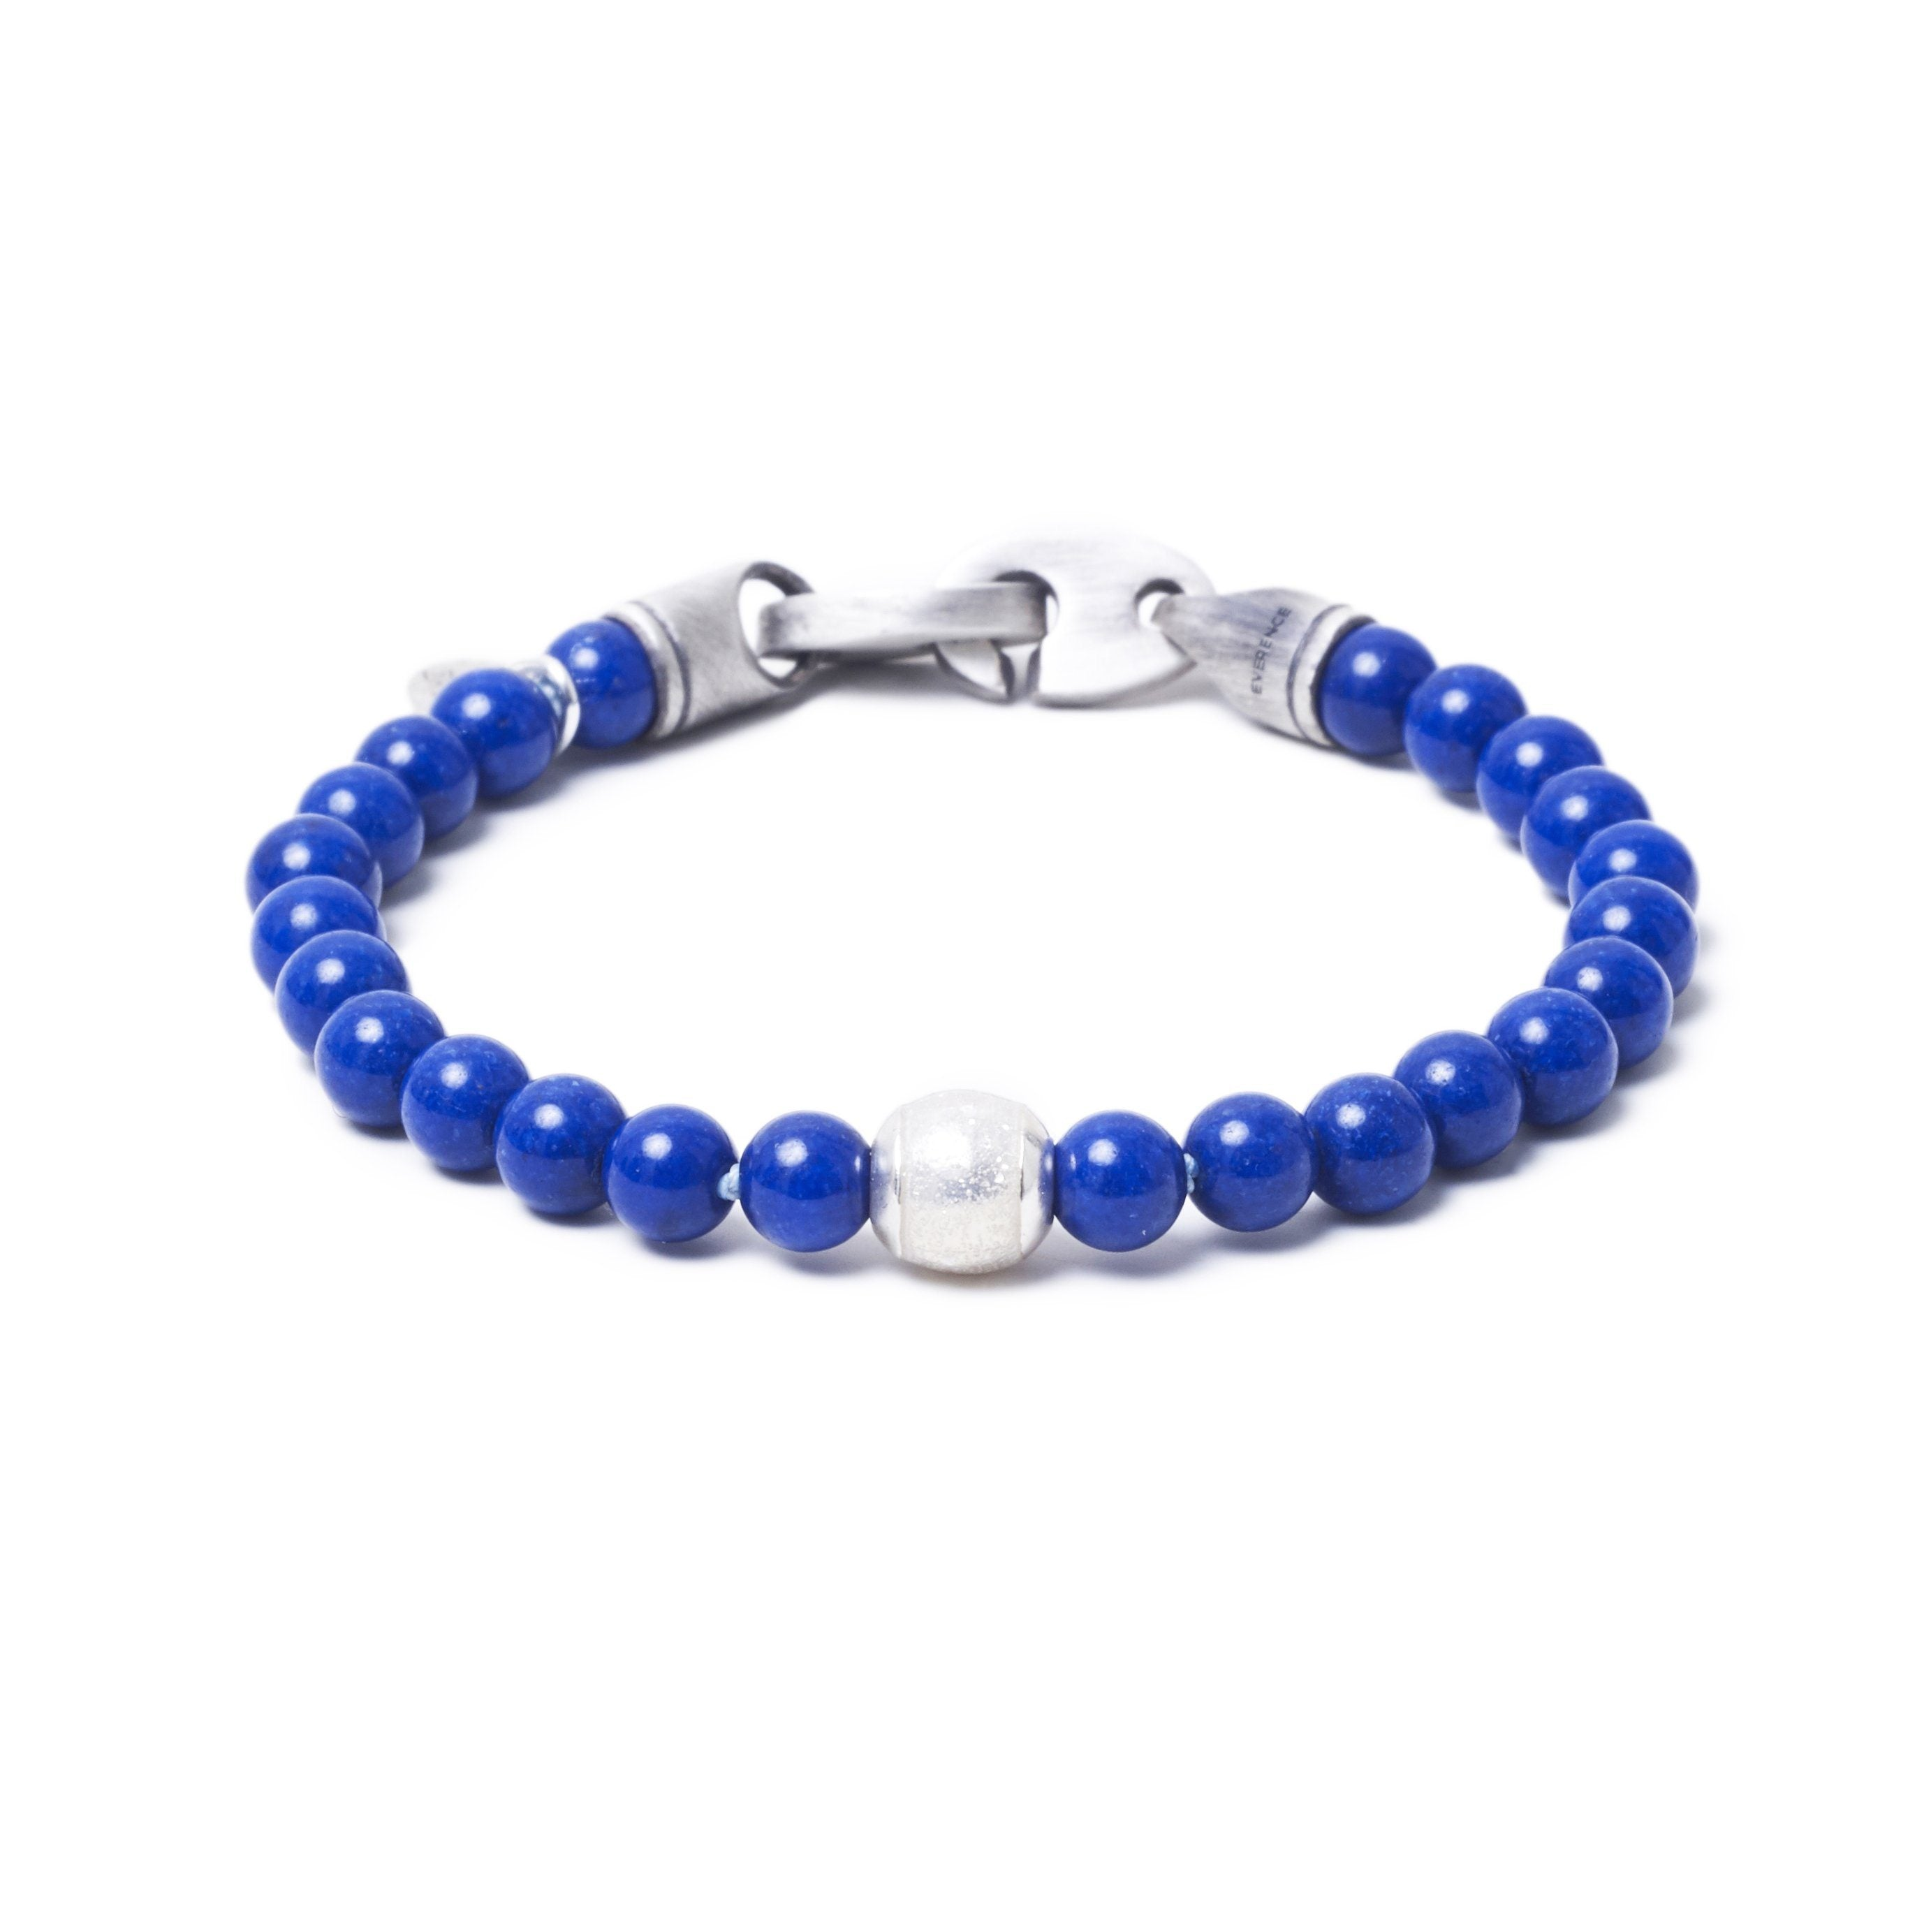 Lapis Lazuli, One Everence Bead everence.life Clear Brummel Hook 7